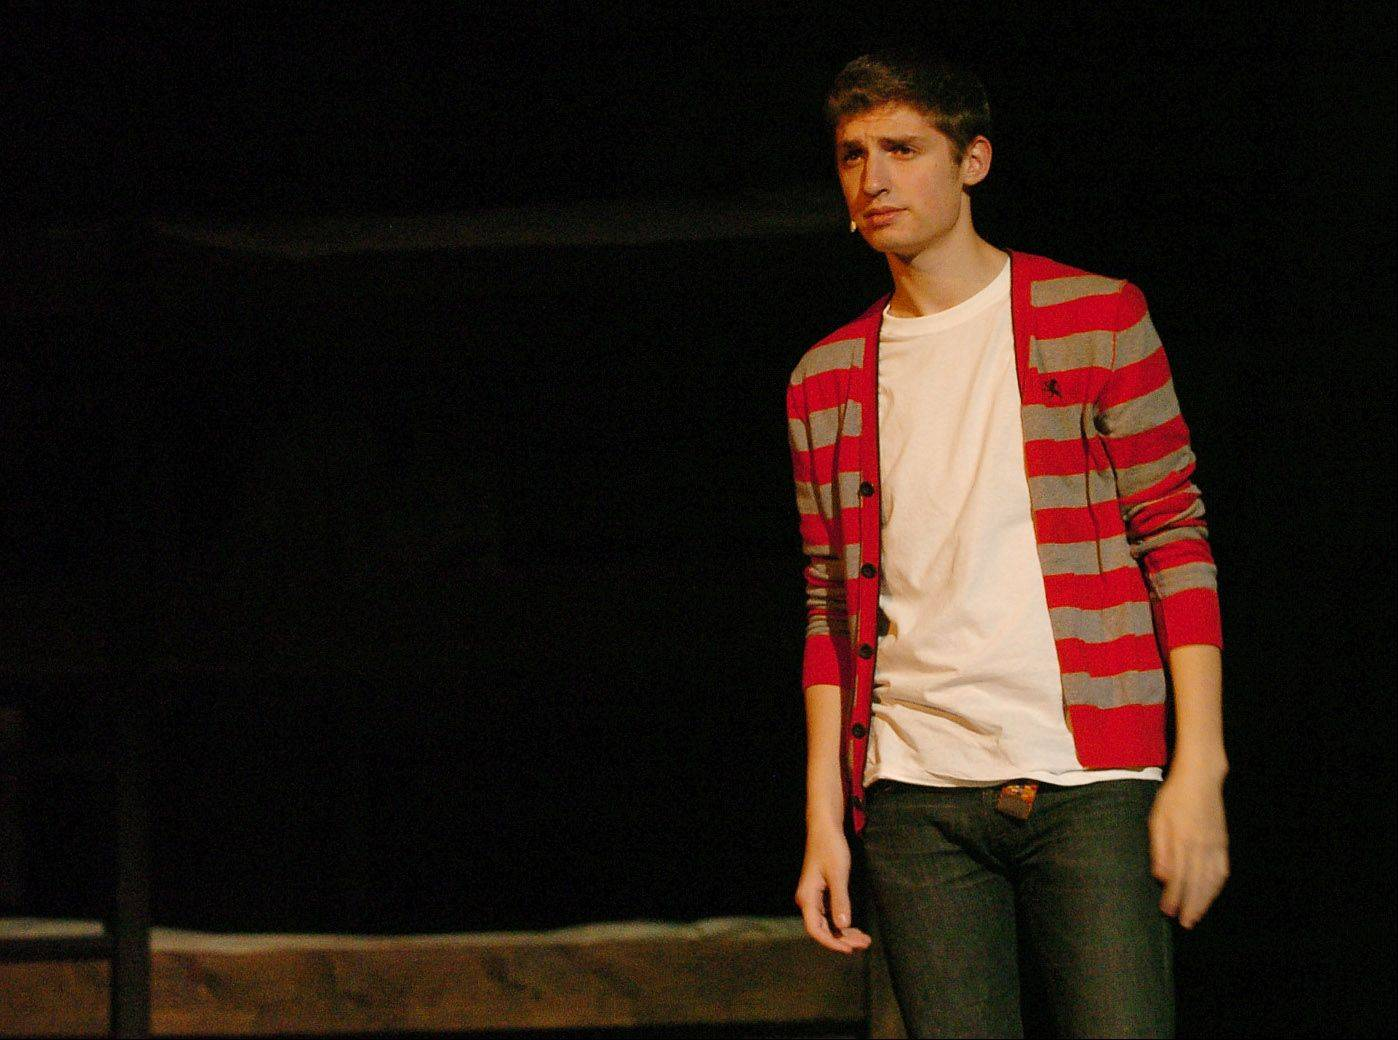 Spencer Armstrong as Ed Silverberg, who walked Anne Frank to school before the war.